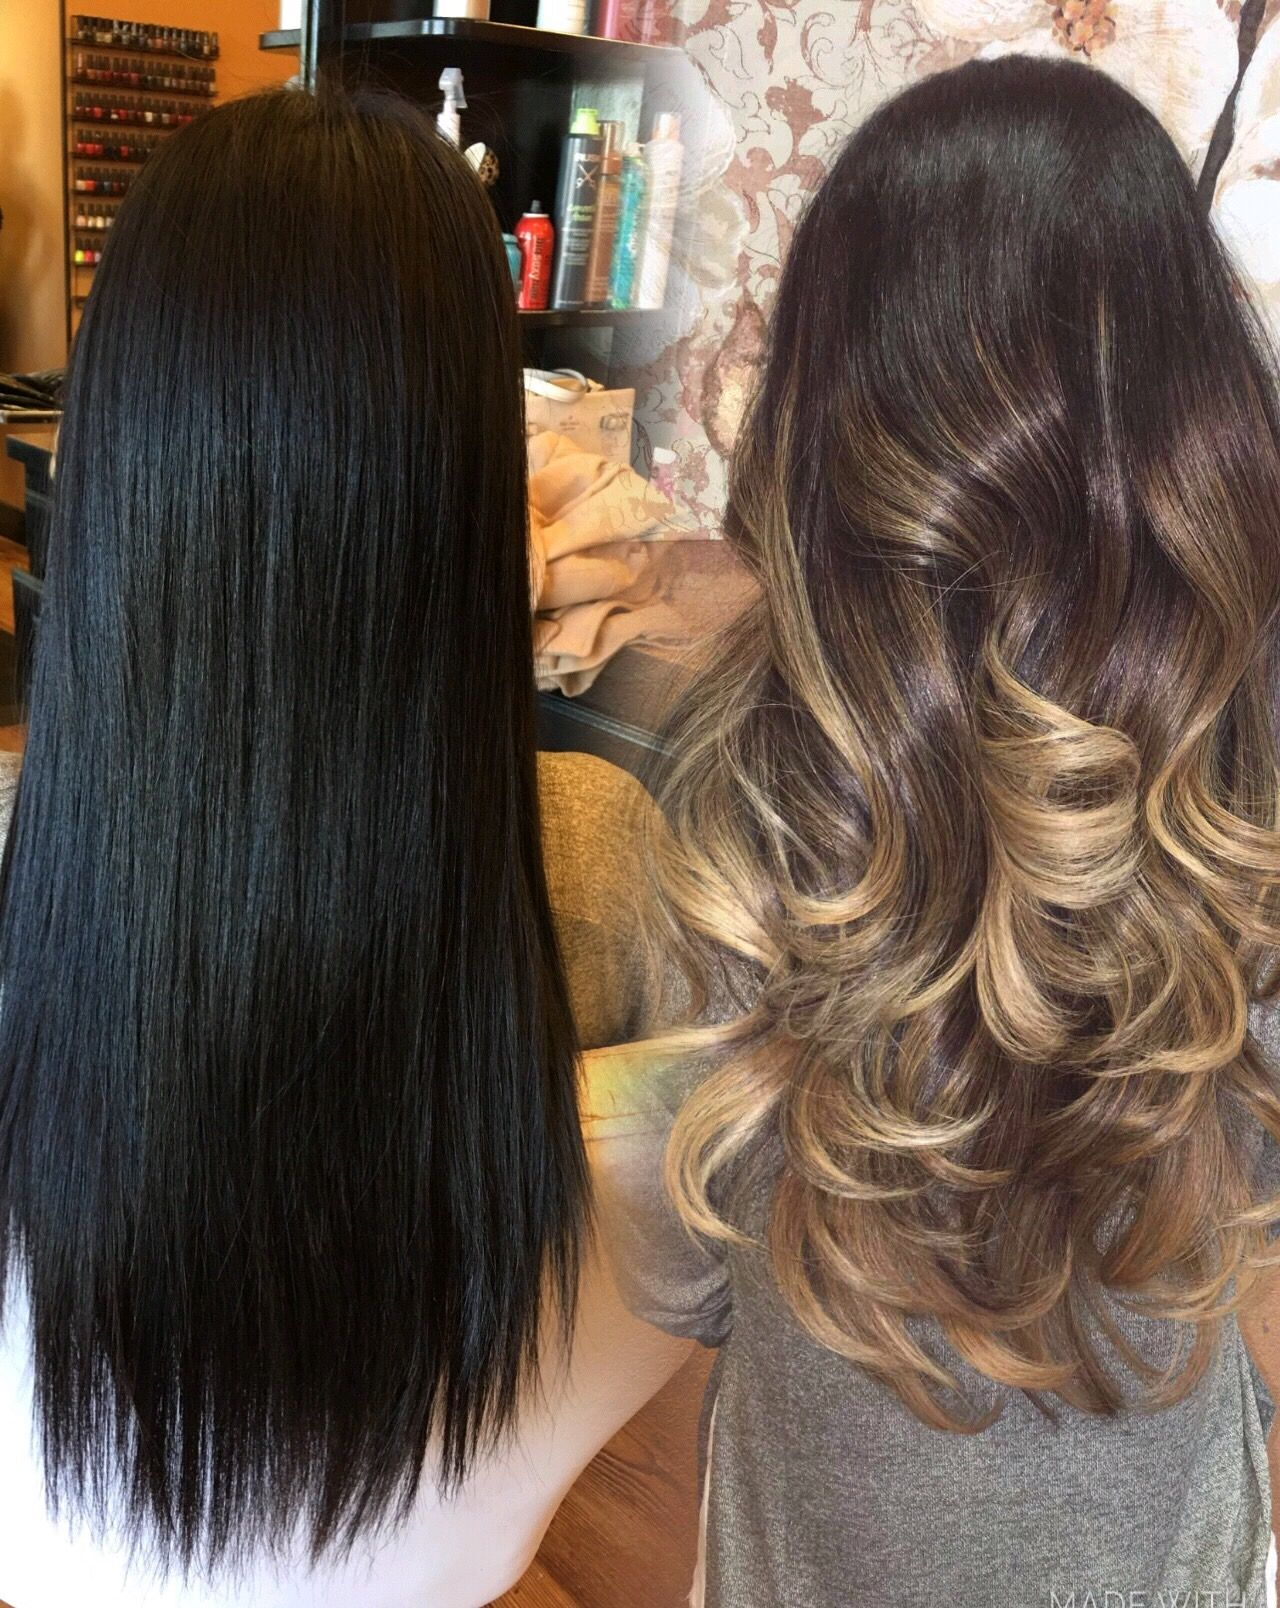 Hair transformation. before and after jetblack hair balayage